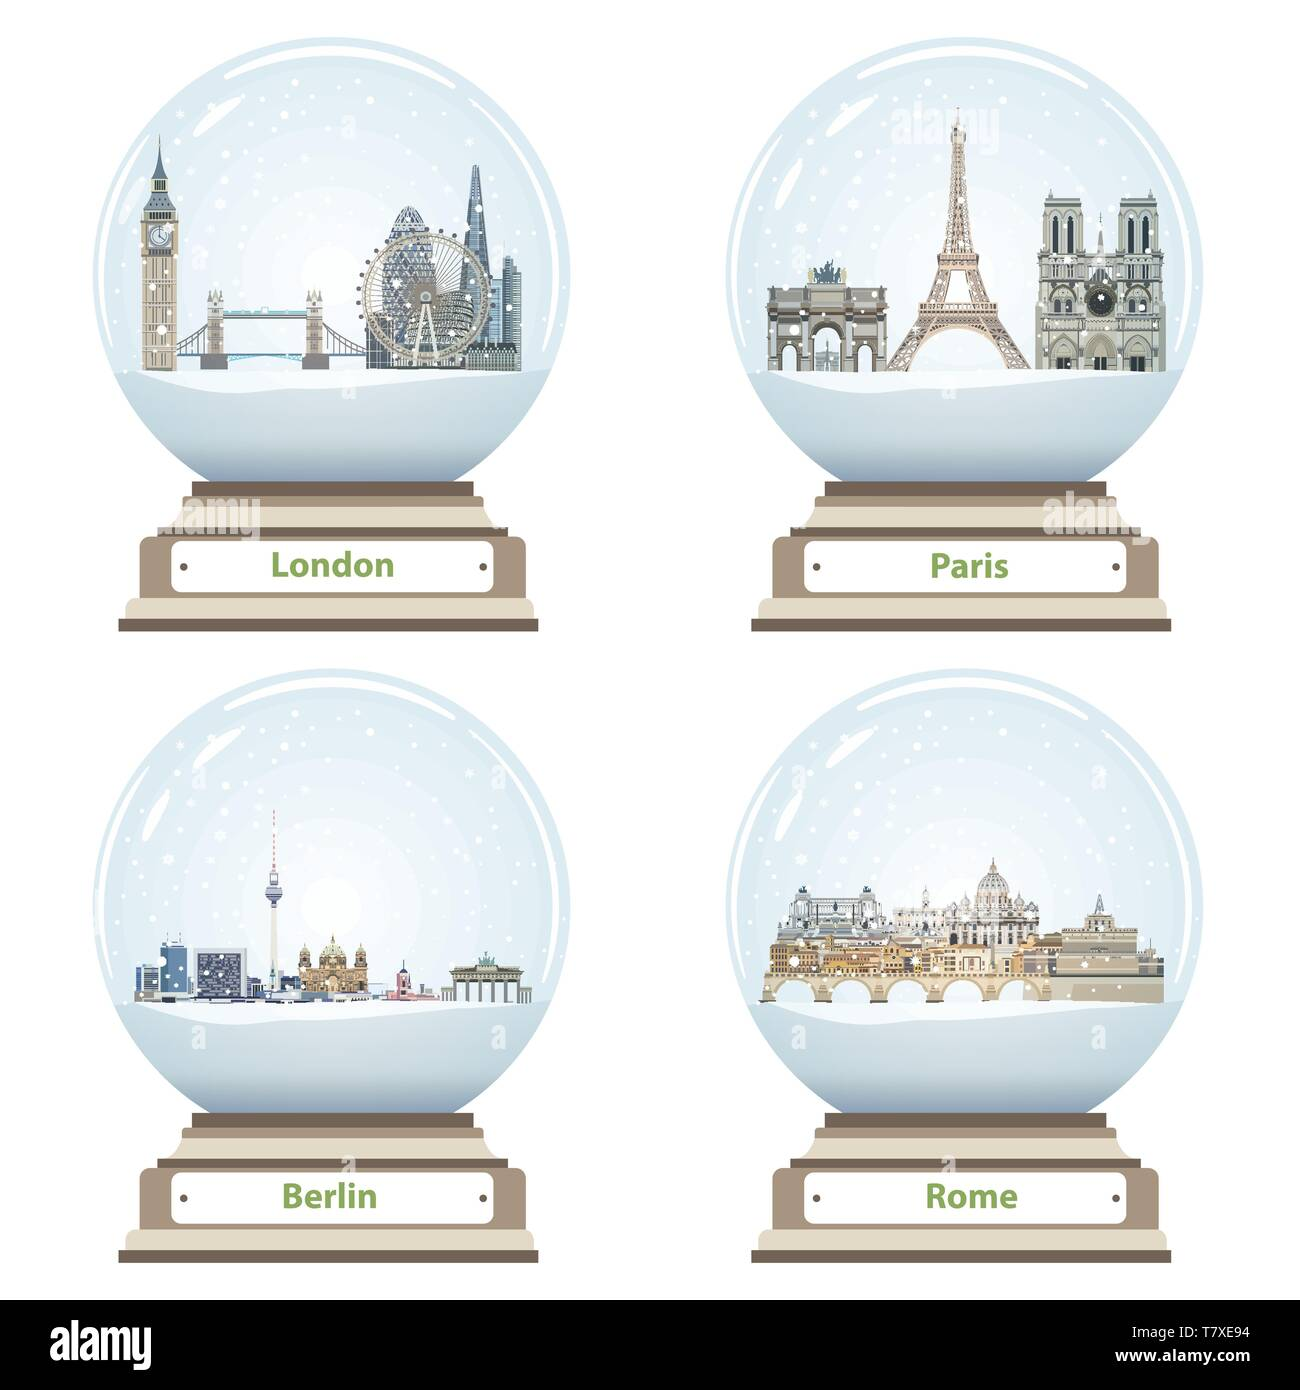 vector snow globes with London, Paris, Berlin and Rome city skylines inside - Stock Image